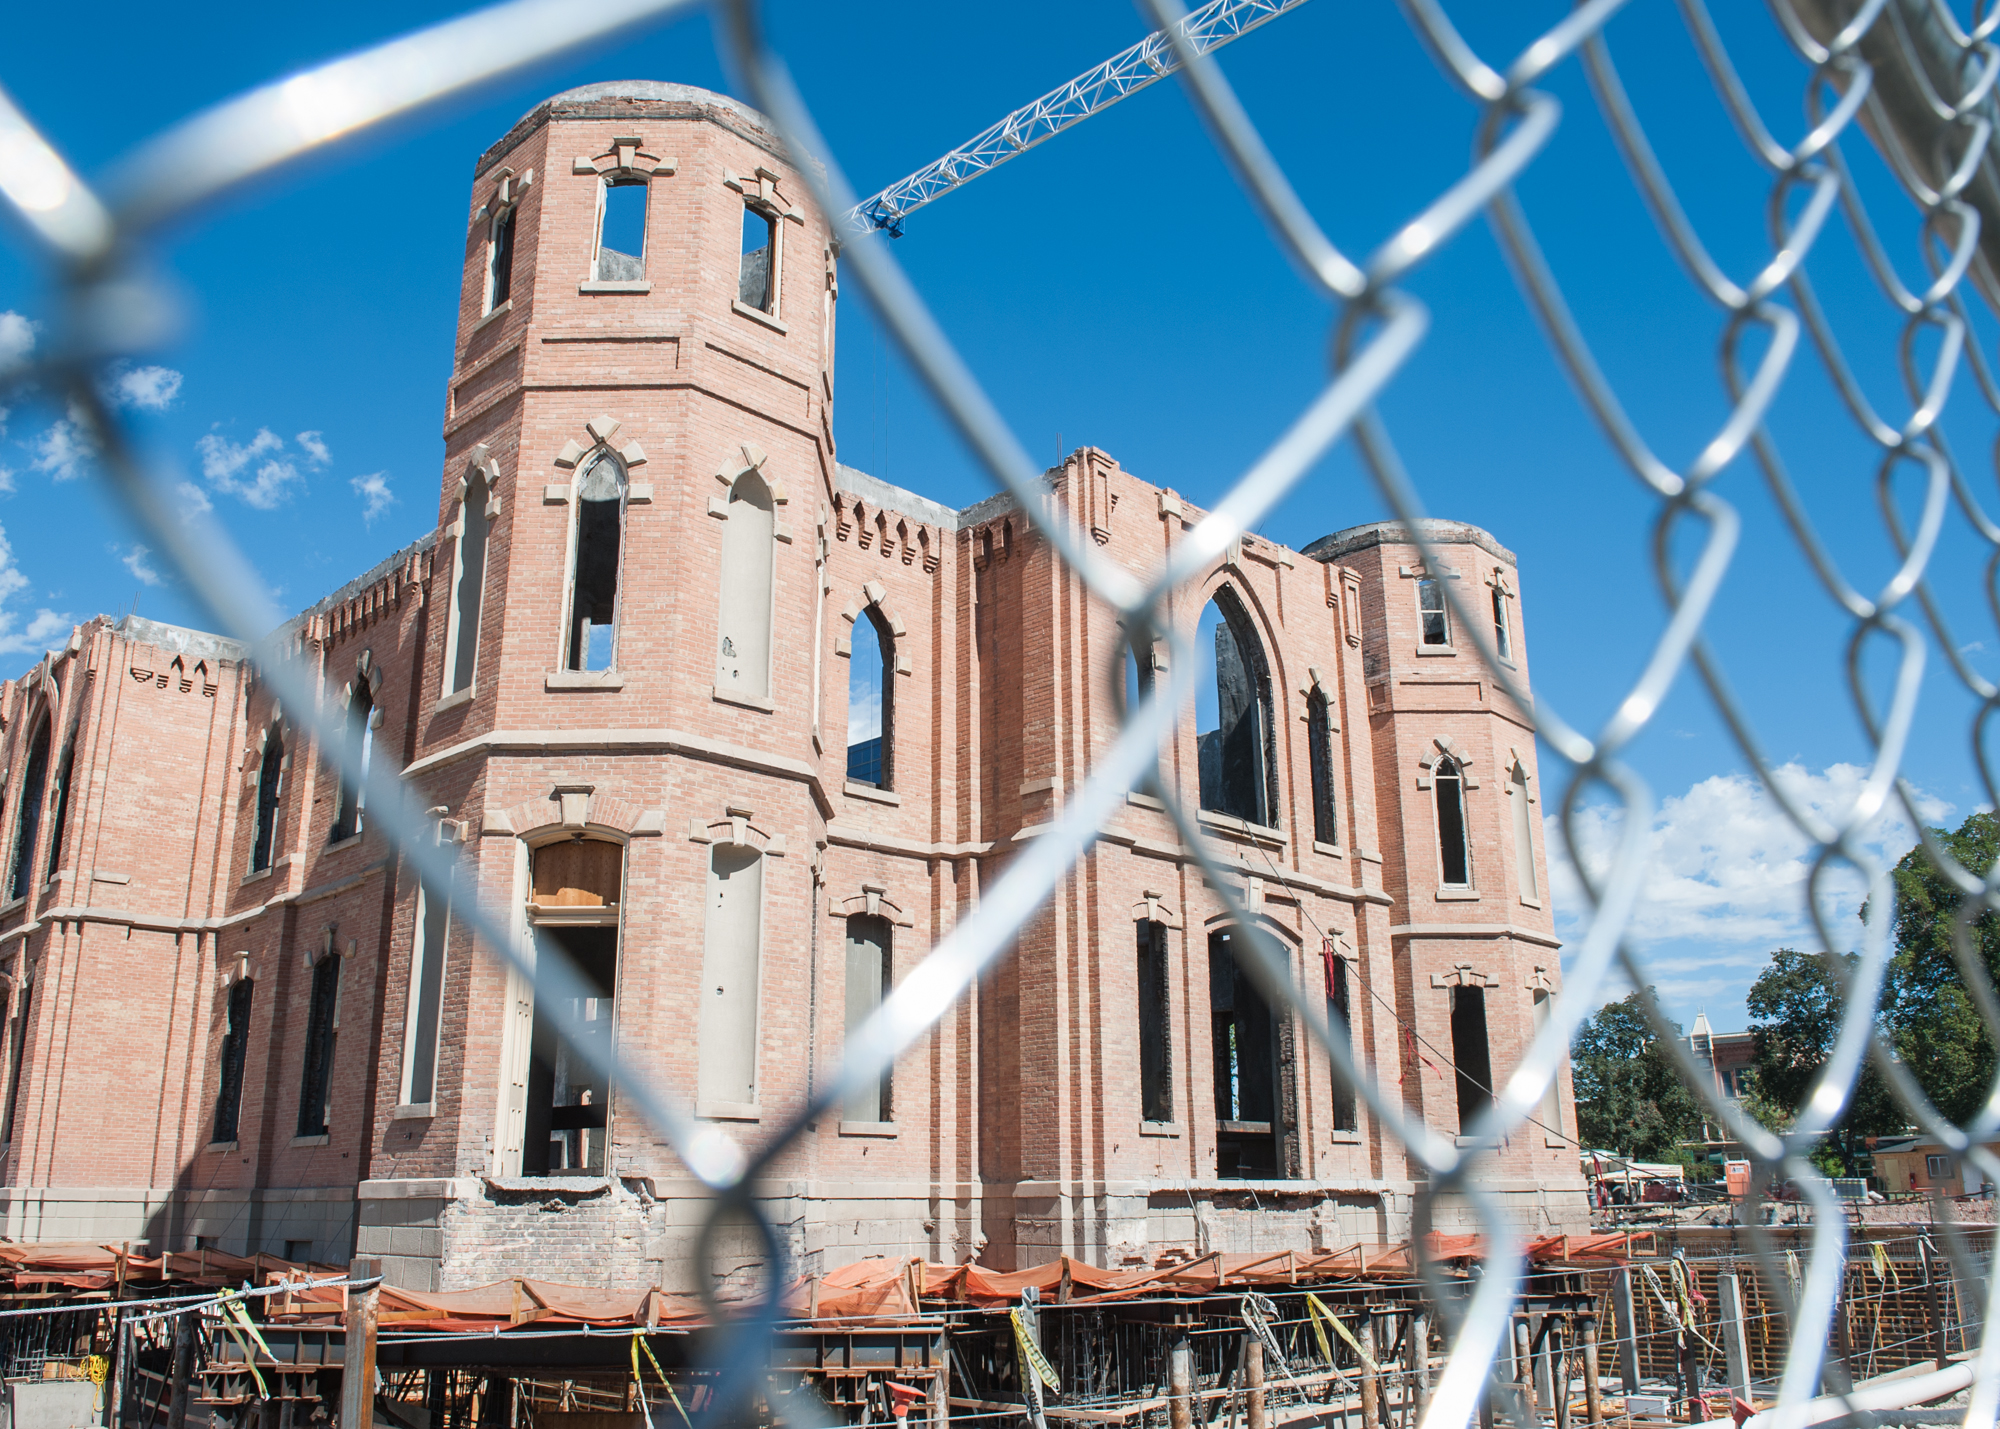 The Provo City Temple, seen here, is expected to be completed in 2015, but no official date has been given. (Photo by Chris Bunker)